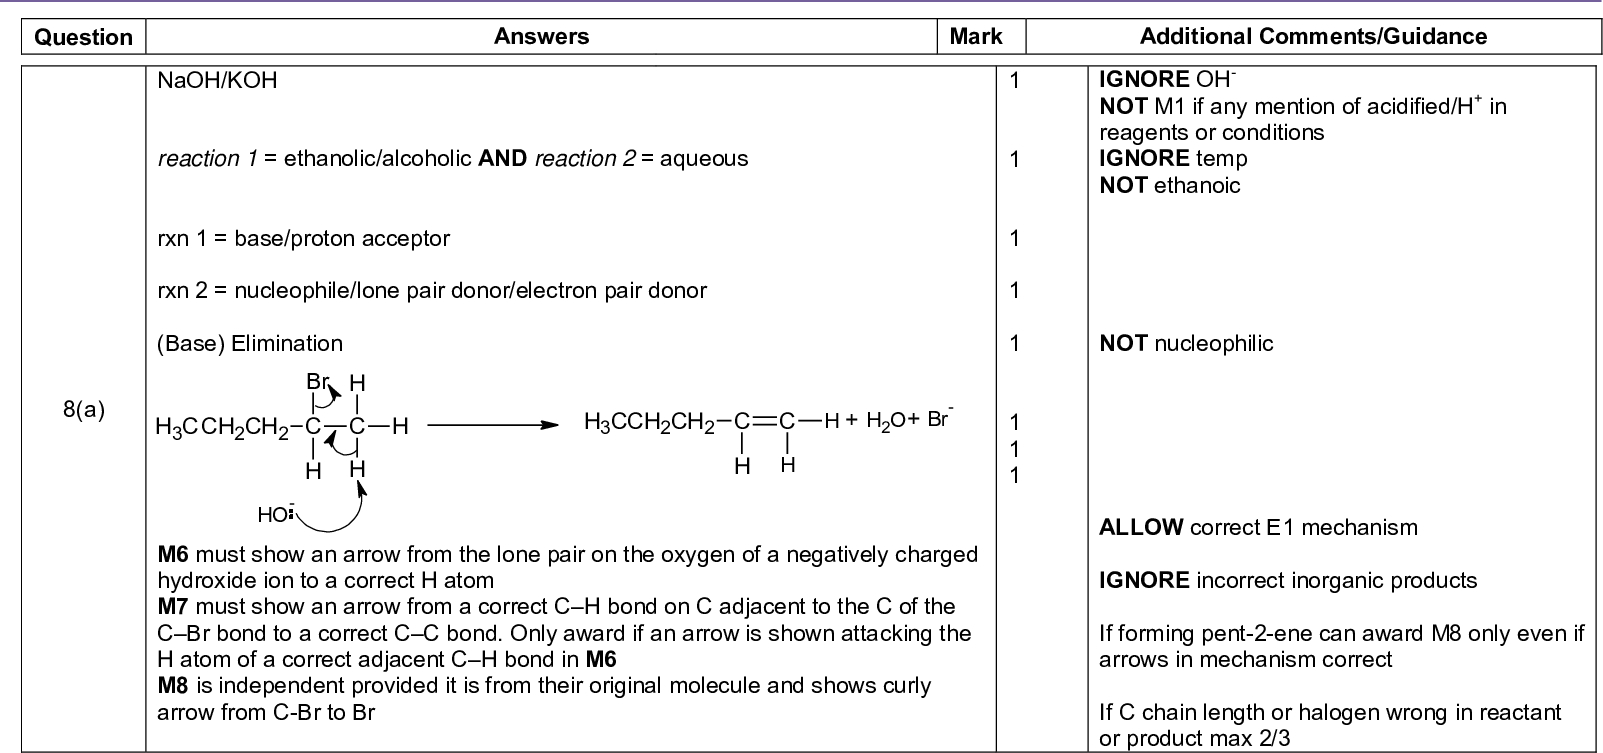 naoh koh reaction ethanolic alcoholic and reaction aqueous rxn base proton acceptor rxn nucleophile lone pair donor electron pair donor base elimination m must show an arrow from the lone pair on the oxygen of a negatively charged hydroxide ion to a correct h atom m must show an arrow from a correct c h bond on c adjacent to the c of the c br bond to a correct c c bond only award if an arrow is shown attacking the h atom of a correct adjacent c h bond in m m is independent provided it is from their original molecule and shows curly arrow from c br to br mark scheme a level chemistry chem june answers mark additional comments guidance ignore oh not m if any mention of acidified h in reagents or conditions ignore temp not ethanoic not nucleophilic allow correct e mechanism ignore incorrect inorganic products if forming pent ene can award m only even if arrows in mechanism correct if c chain length or halogen wrong in reactant or product max of question a z pent ene e pent ene no free rotation around c c different atoms groups on each of the c c cs owtte b mark scheme a level chemistry chem june if no m and m allow mark if both structures or both names correct not cis and trans allow no rotation of c c ignore functional of mark scheme a level chemistry chem june c same volume amount of agno aq added to same volume amount no of drops of haloalkane in beaker flask in each experiment same temp or same agno each time record time to measure sensible observation about the amount of agcl ppt rate amount time or proportional to time or reference to shorter time higher rate longer time lower rate both volume references needed ignore inappropriate volumes e g first appearance of ppt ppt obscures mark reading on a colorimeter ignore colour of ppt allow silver mirror not reference to same time if describing method based on timing how long for ppt to form allow gravimetric method based on same time for each experiment allow greater mass higher rate if gravimetric method total of